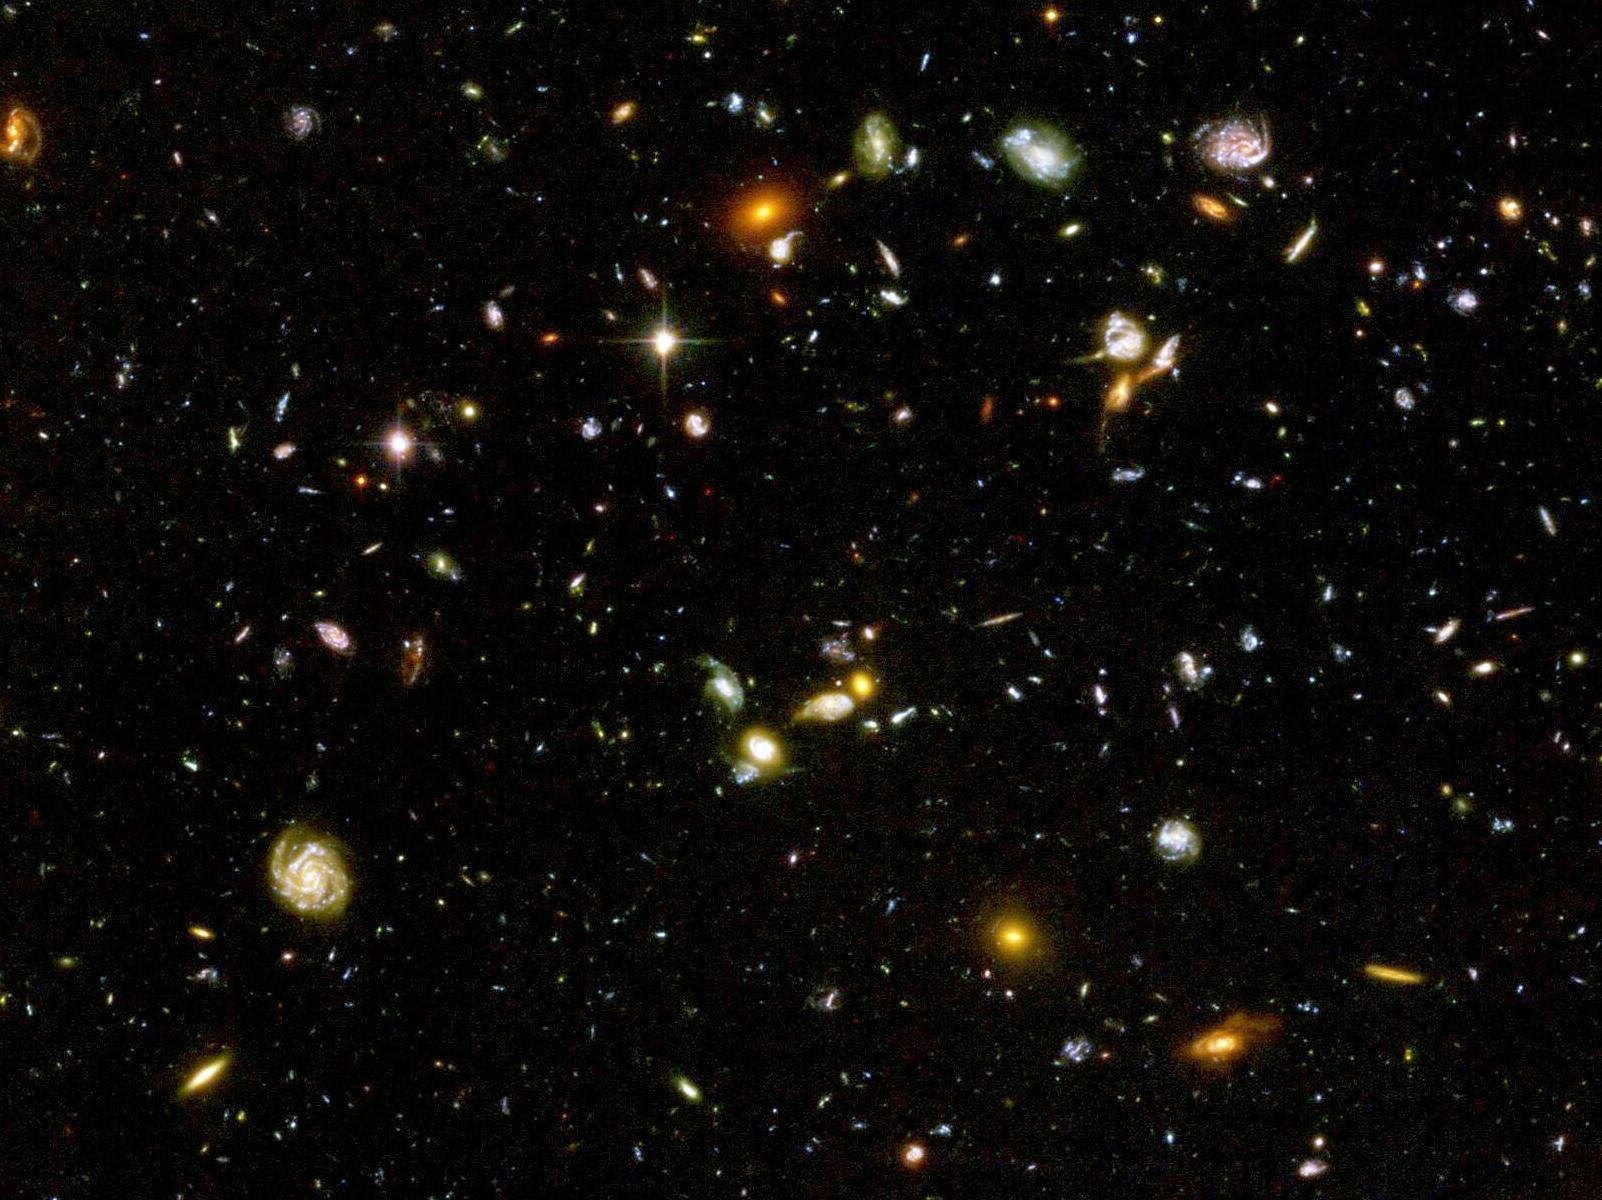 hubble deep field hd wallpaper - photo #9